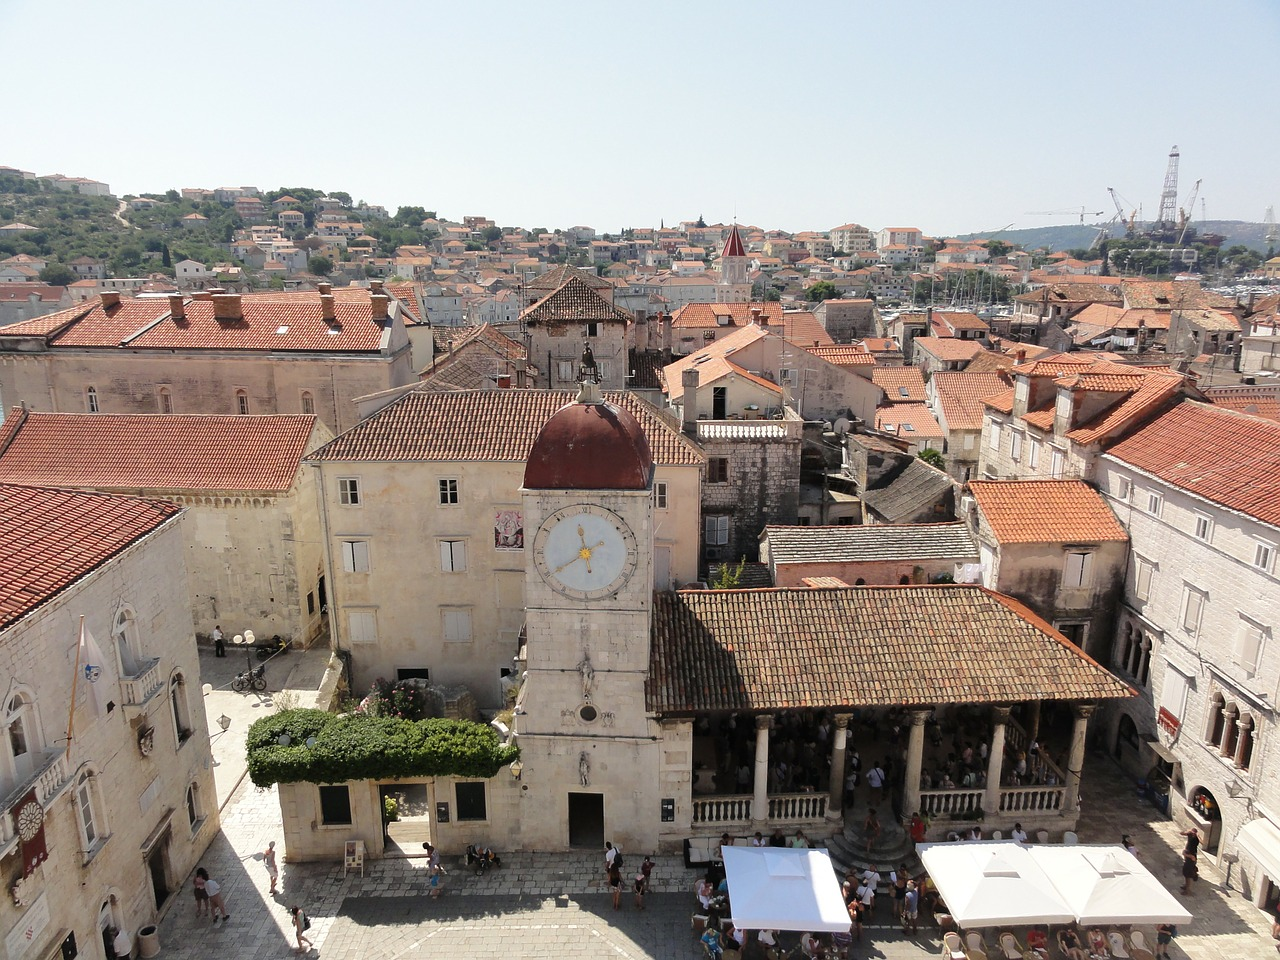 above-the-roofs-of-trogir-73175_1280.jpg